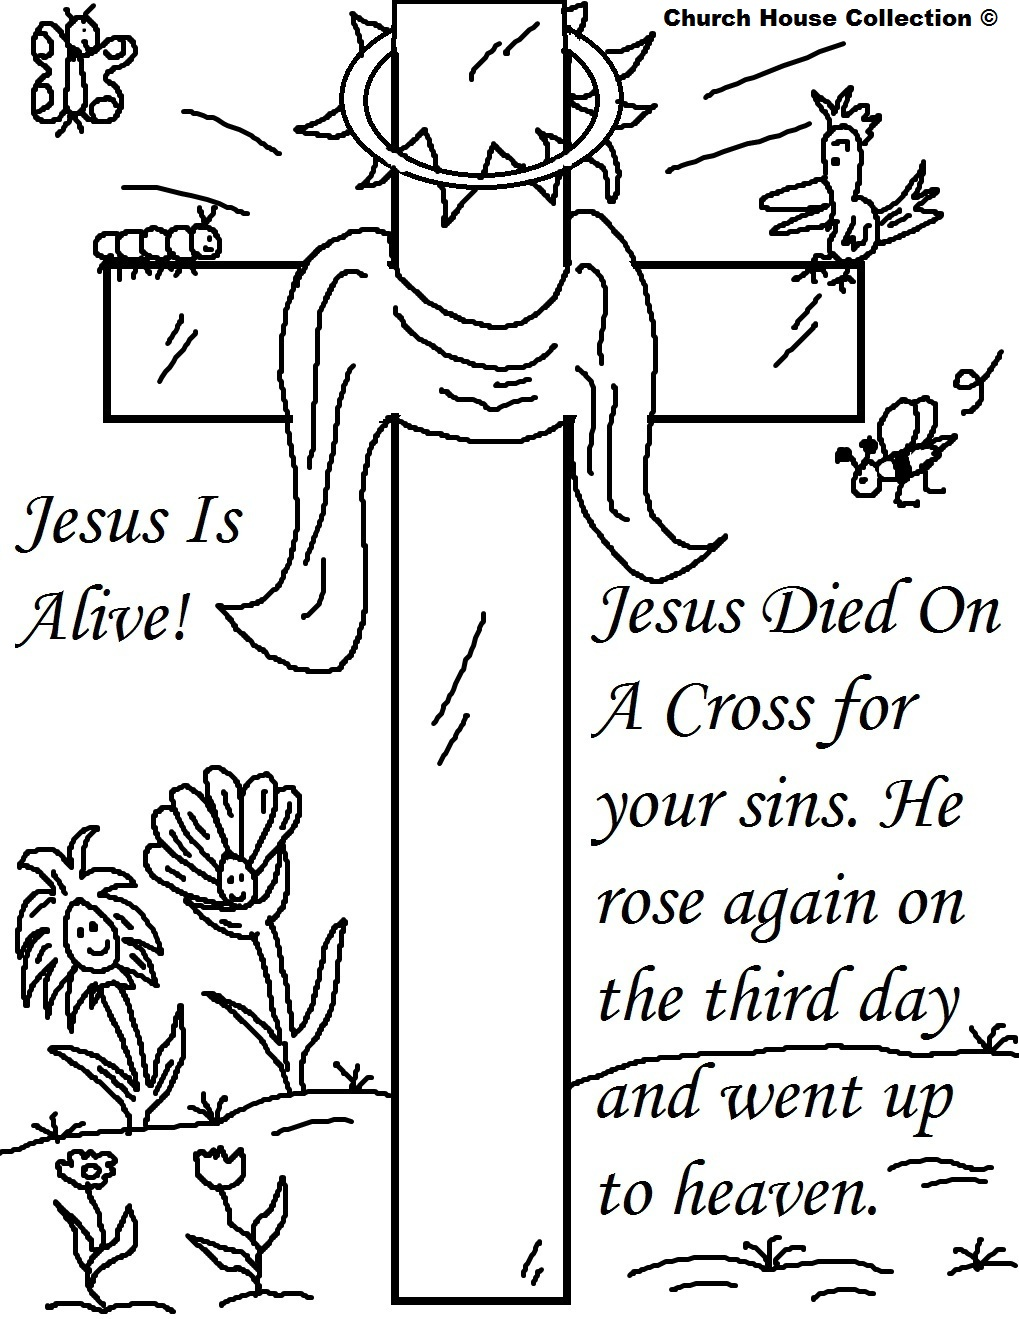 http://www.churchhousecollection.com/resources/Jesus%20Easter%20Resurrection%20Coloring%20Pages%202.jpg